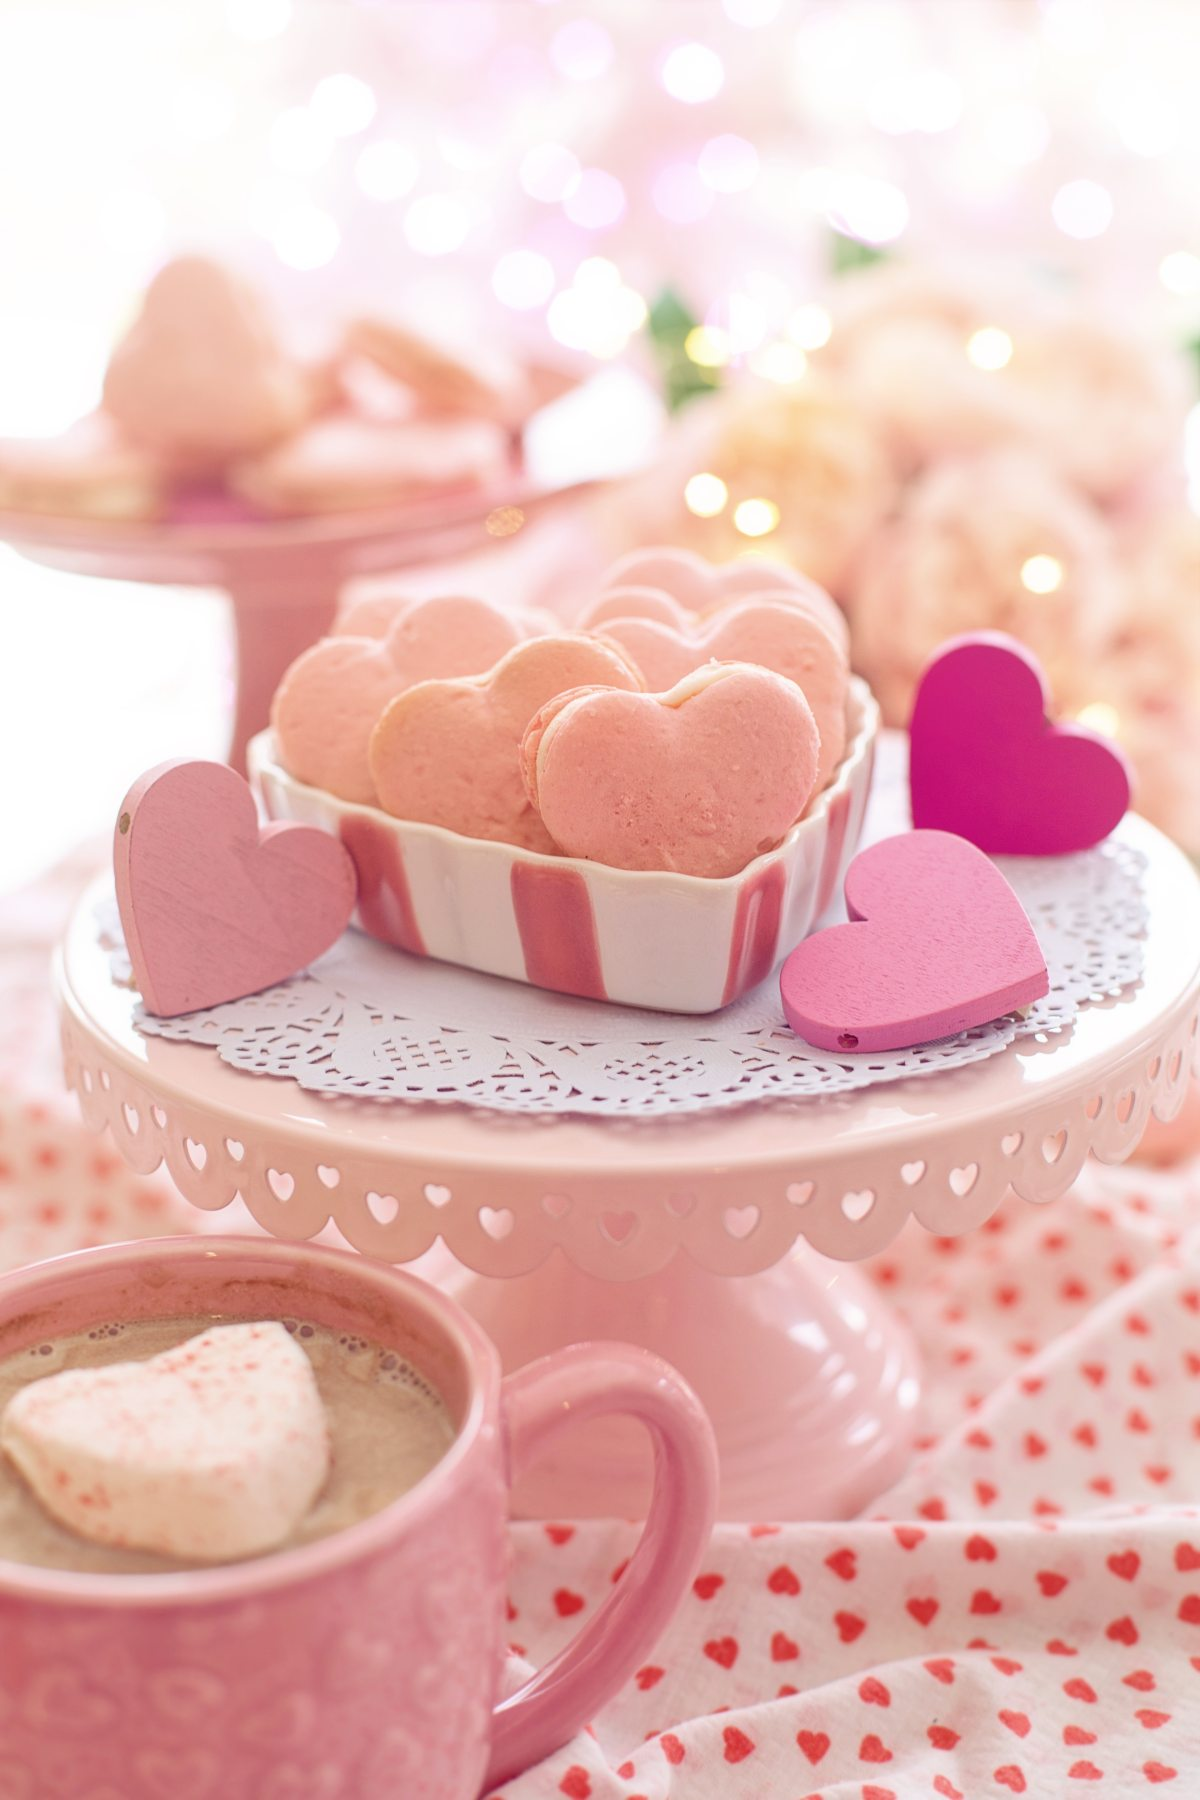 5 Heart-Shaped Foods to Give Your Valentine